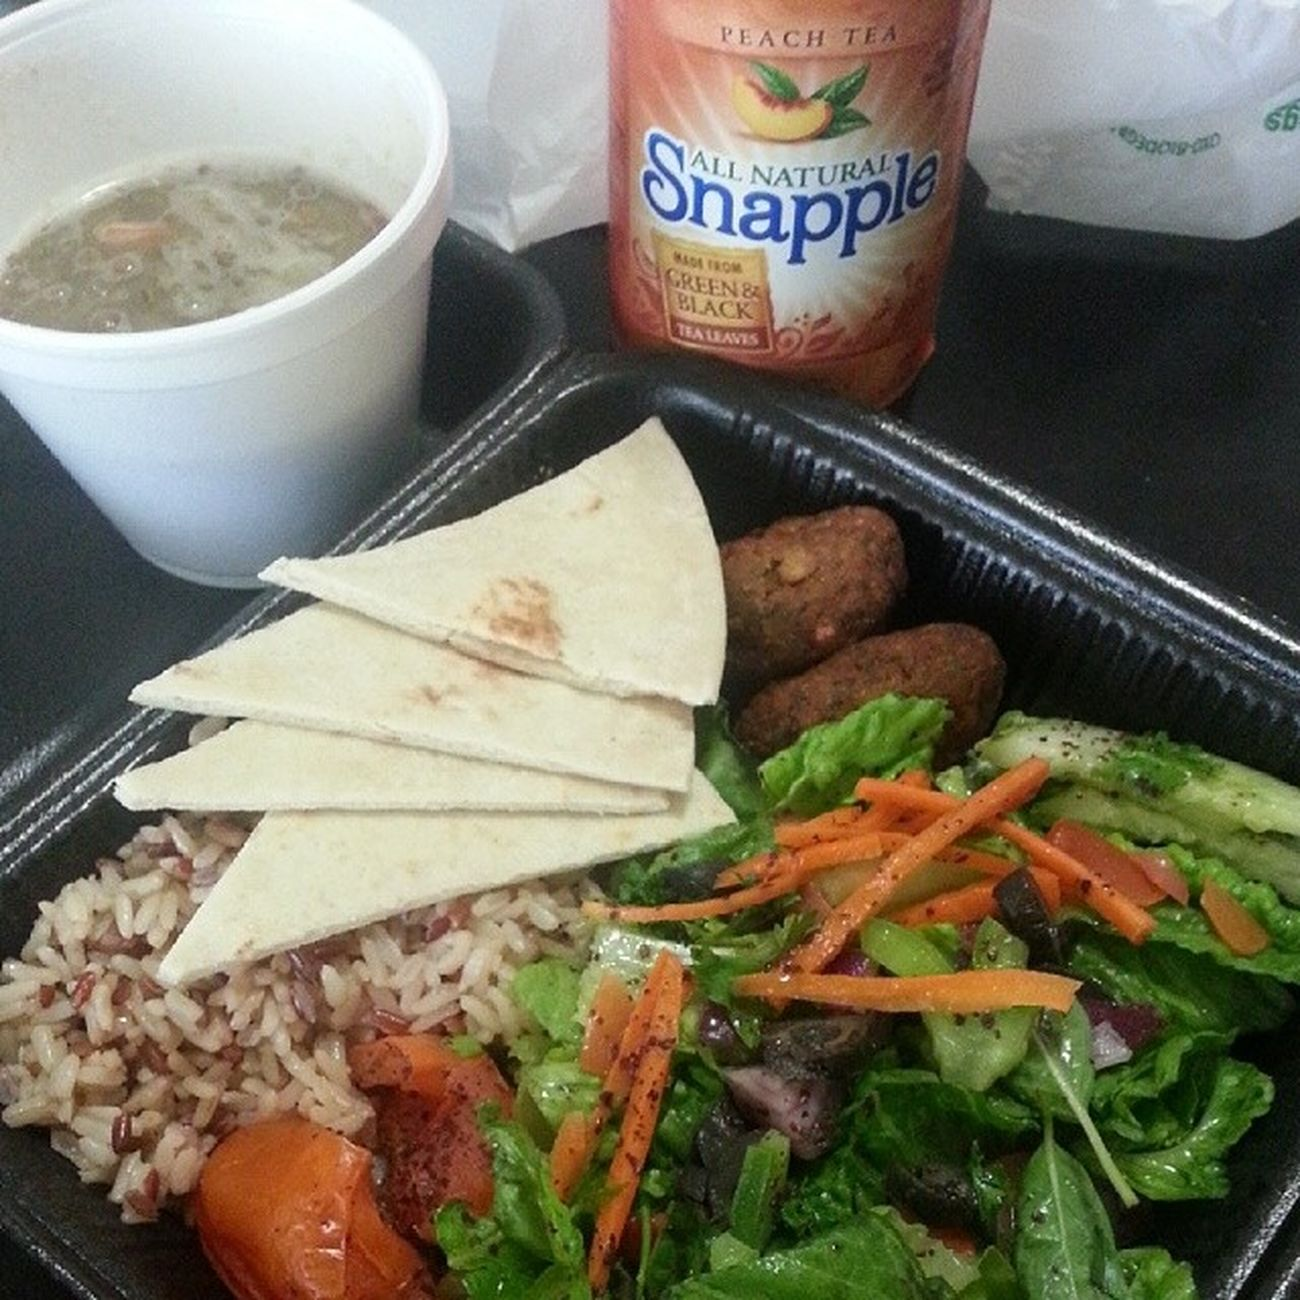 It's not lunch with the guys but I still love it DrKabob Vegetarian plate Delicious Palate savory